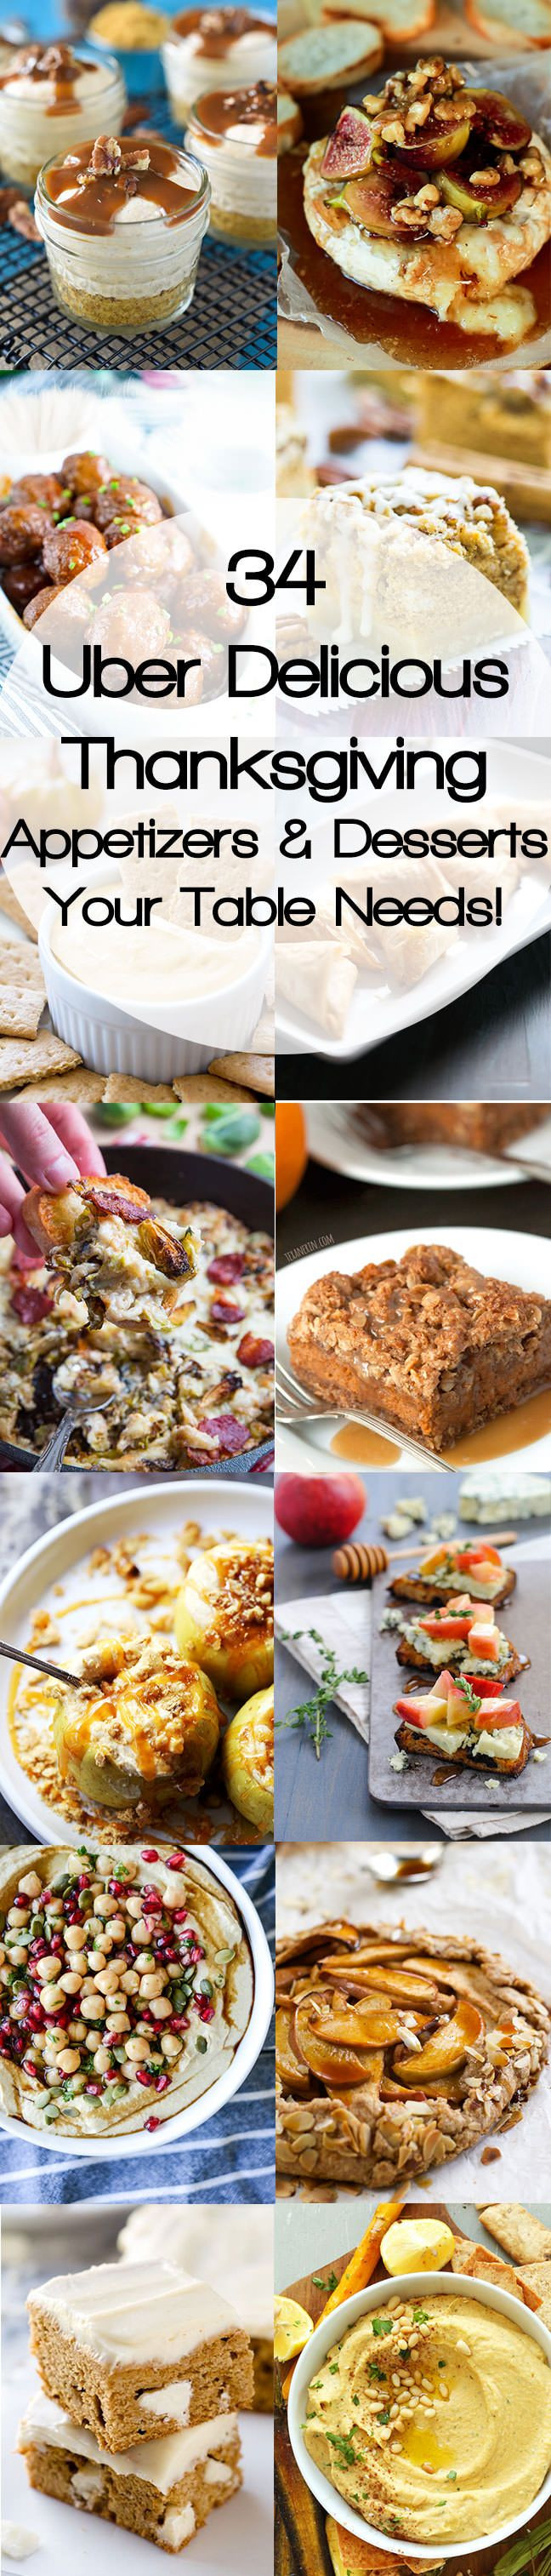 Healthy Fall Appetizers  Healthy Thanksgiving Appetizers & Desserts